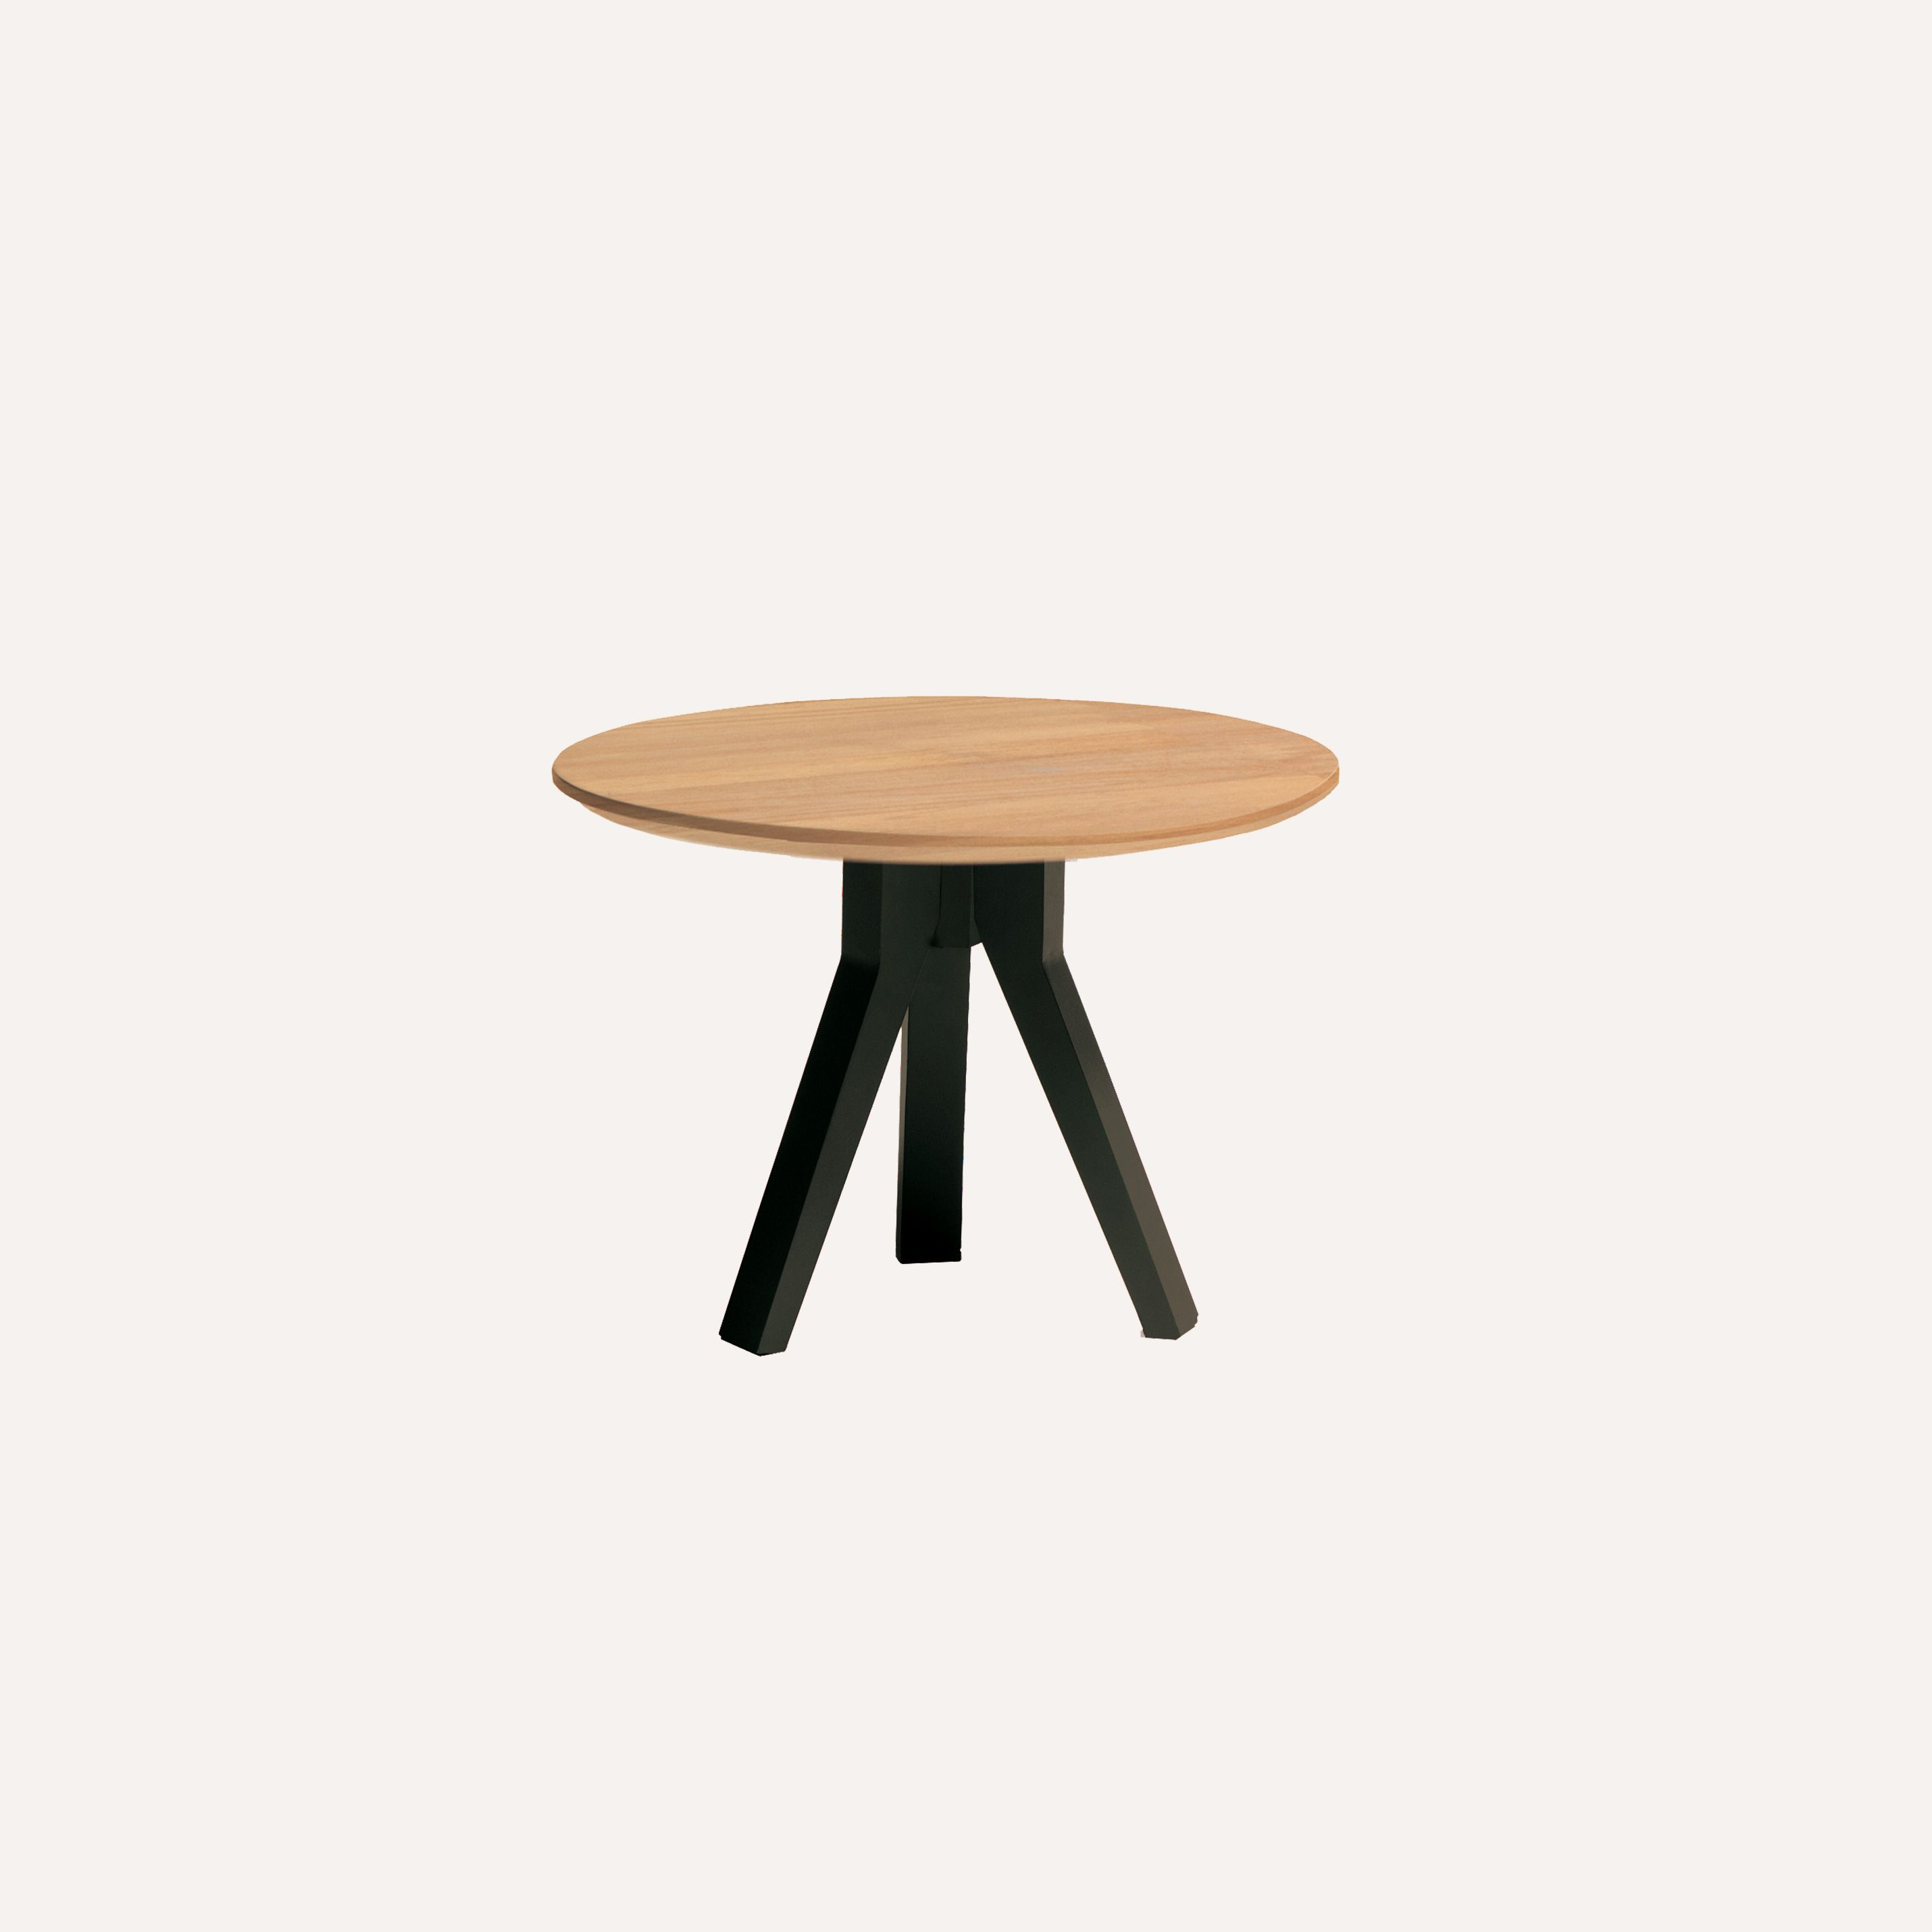 Mobilia design coffee and side tables - Explore Side Tables Tables And More